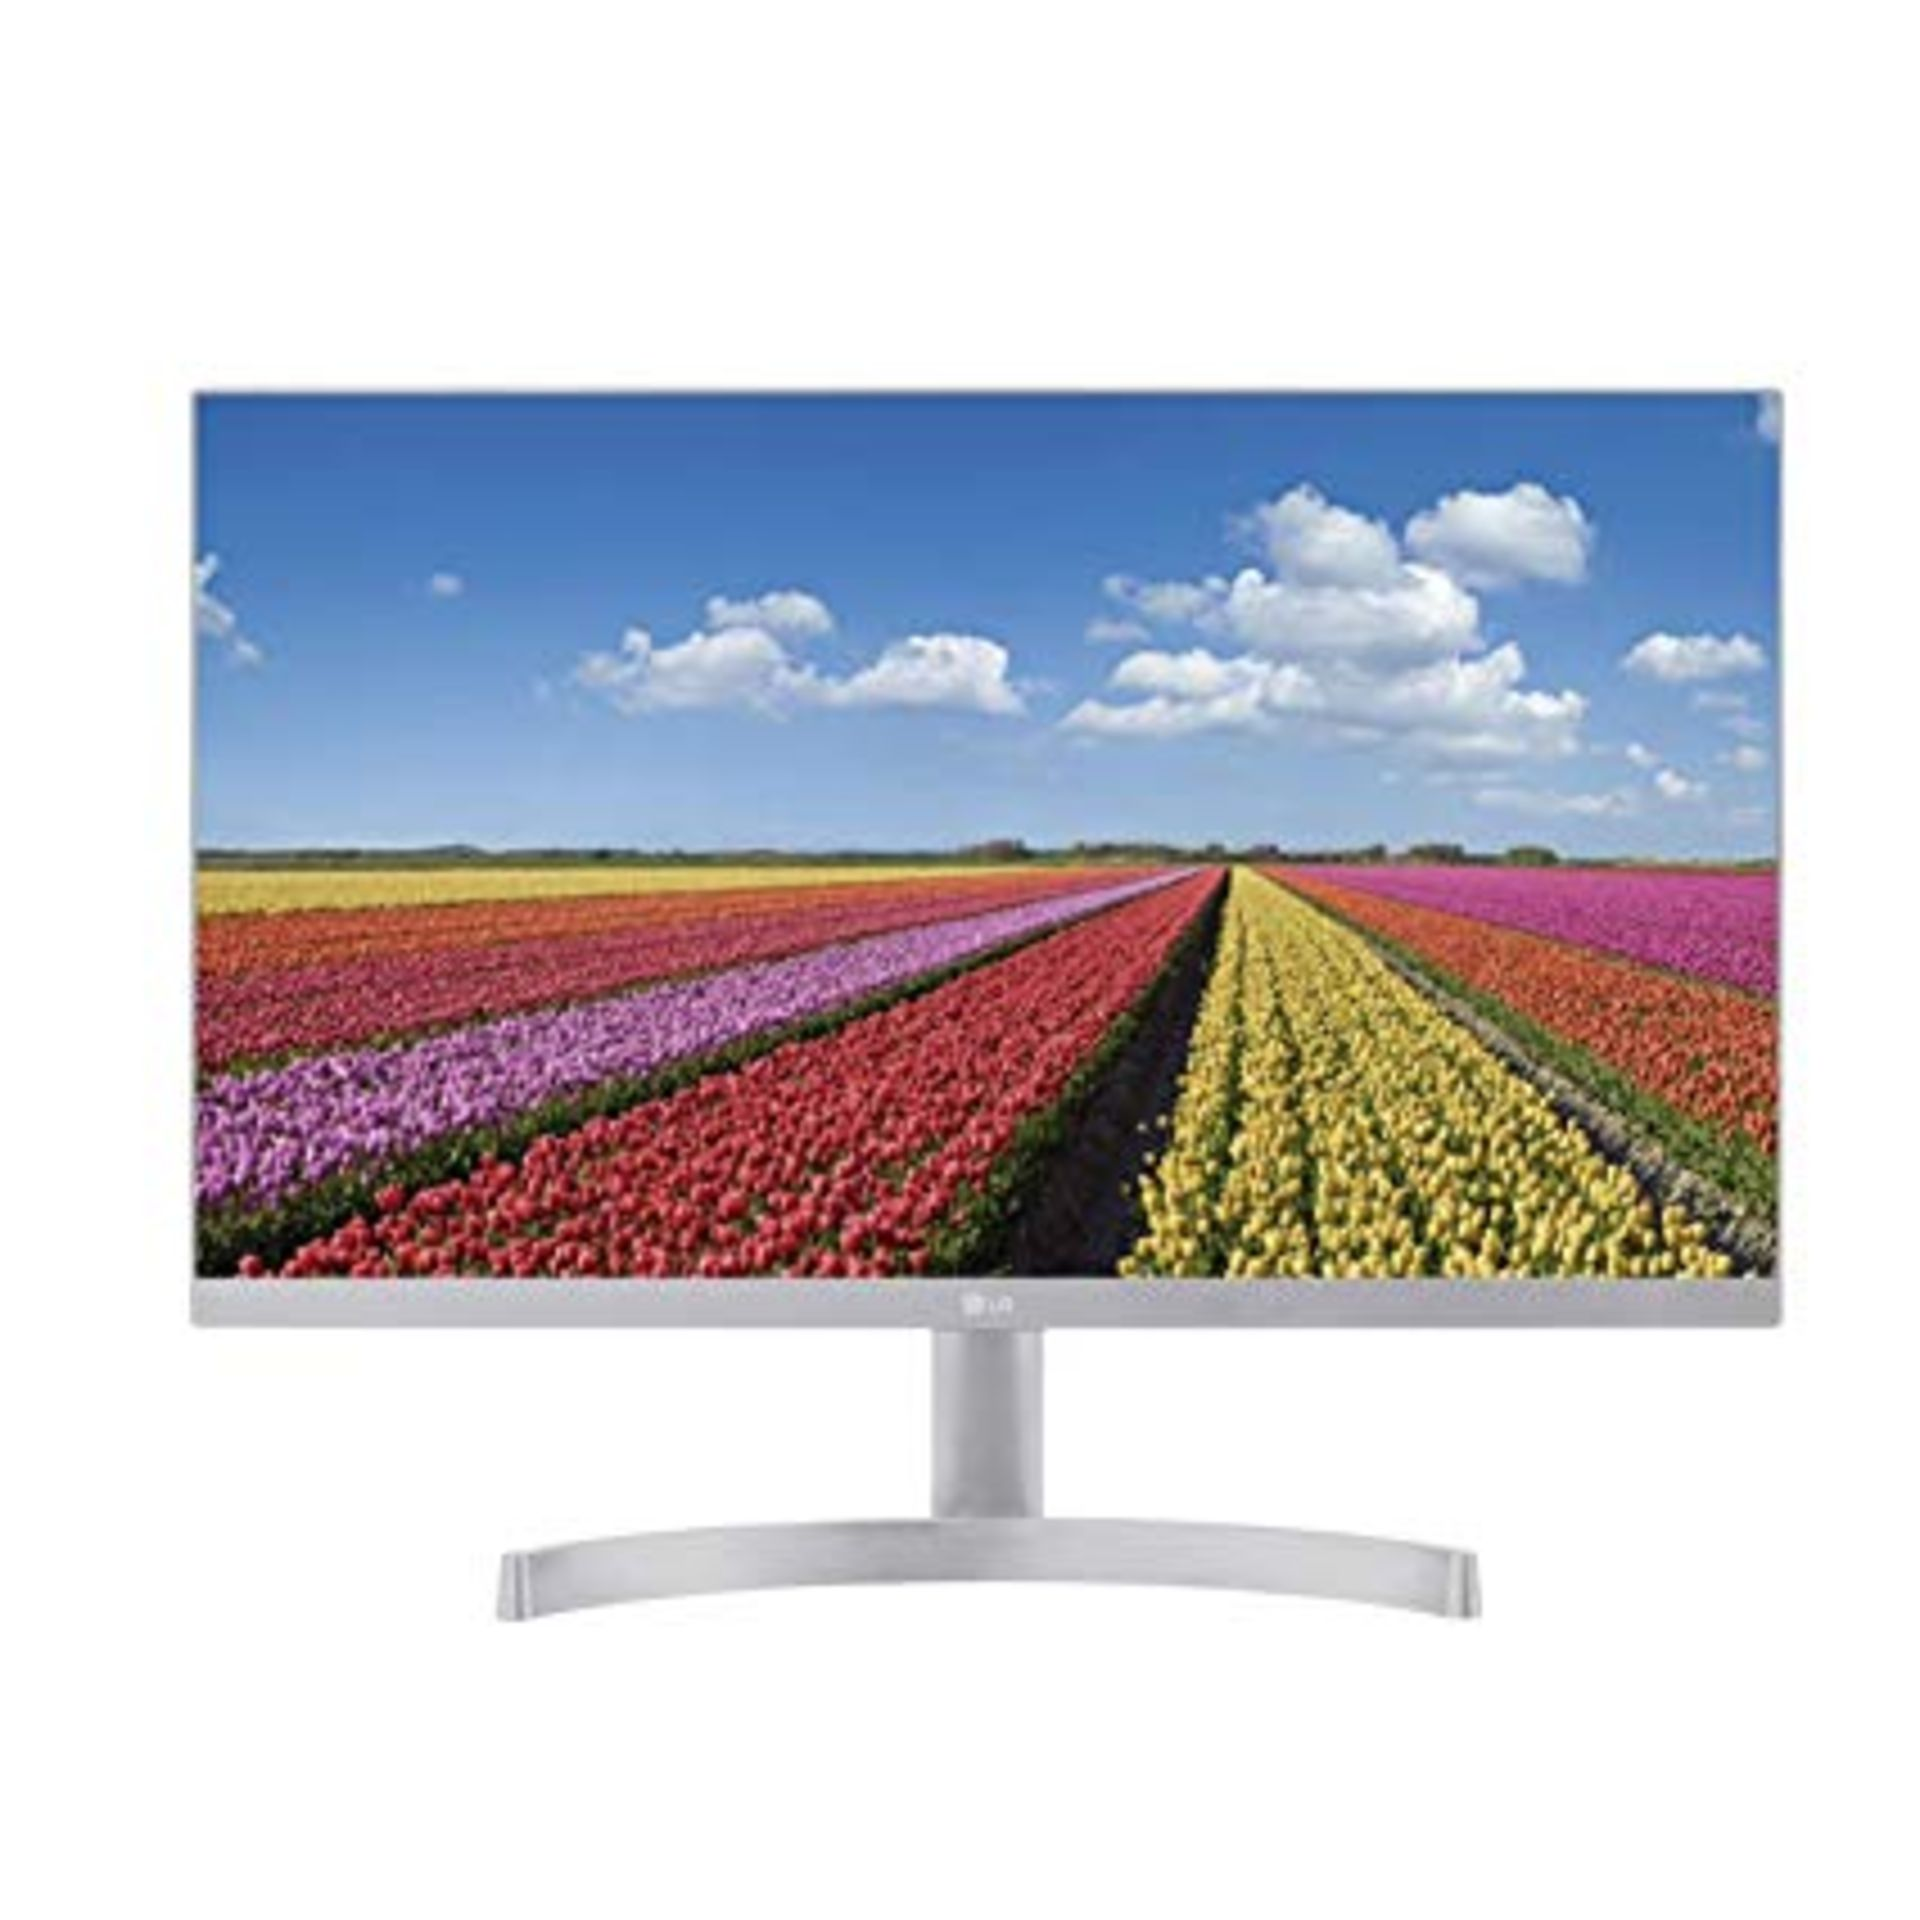 Lot 16032 - V Grade A LG 24 Inch FULL HD IPS LED MONITOR - HDMI X 2, D-SUB - WHITE 24MK600M-W